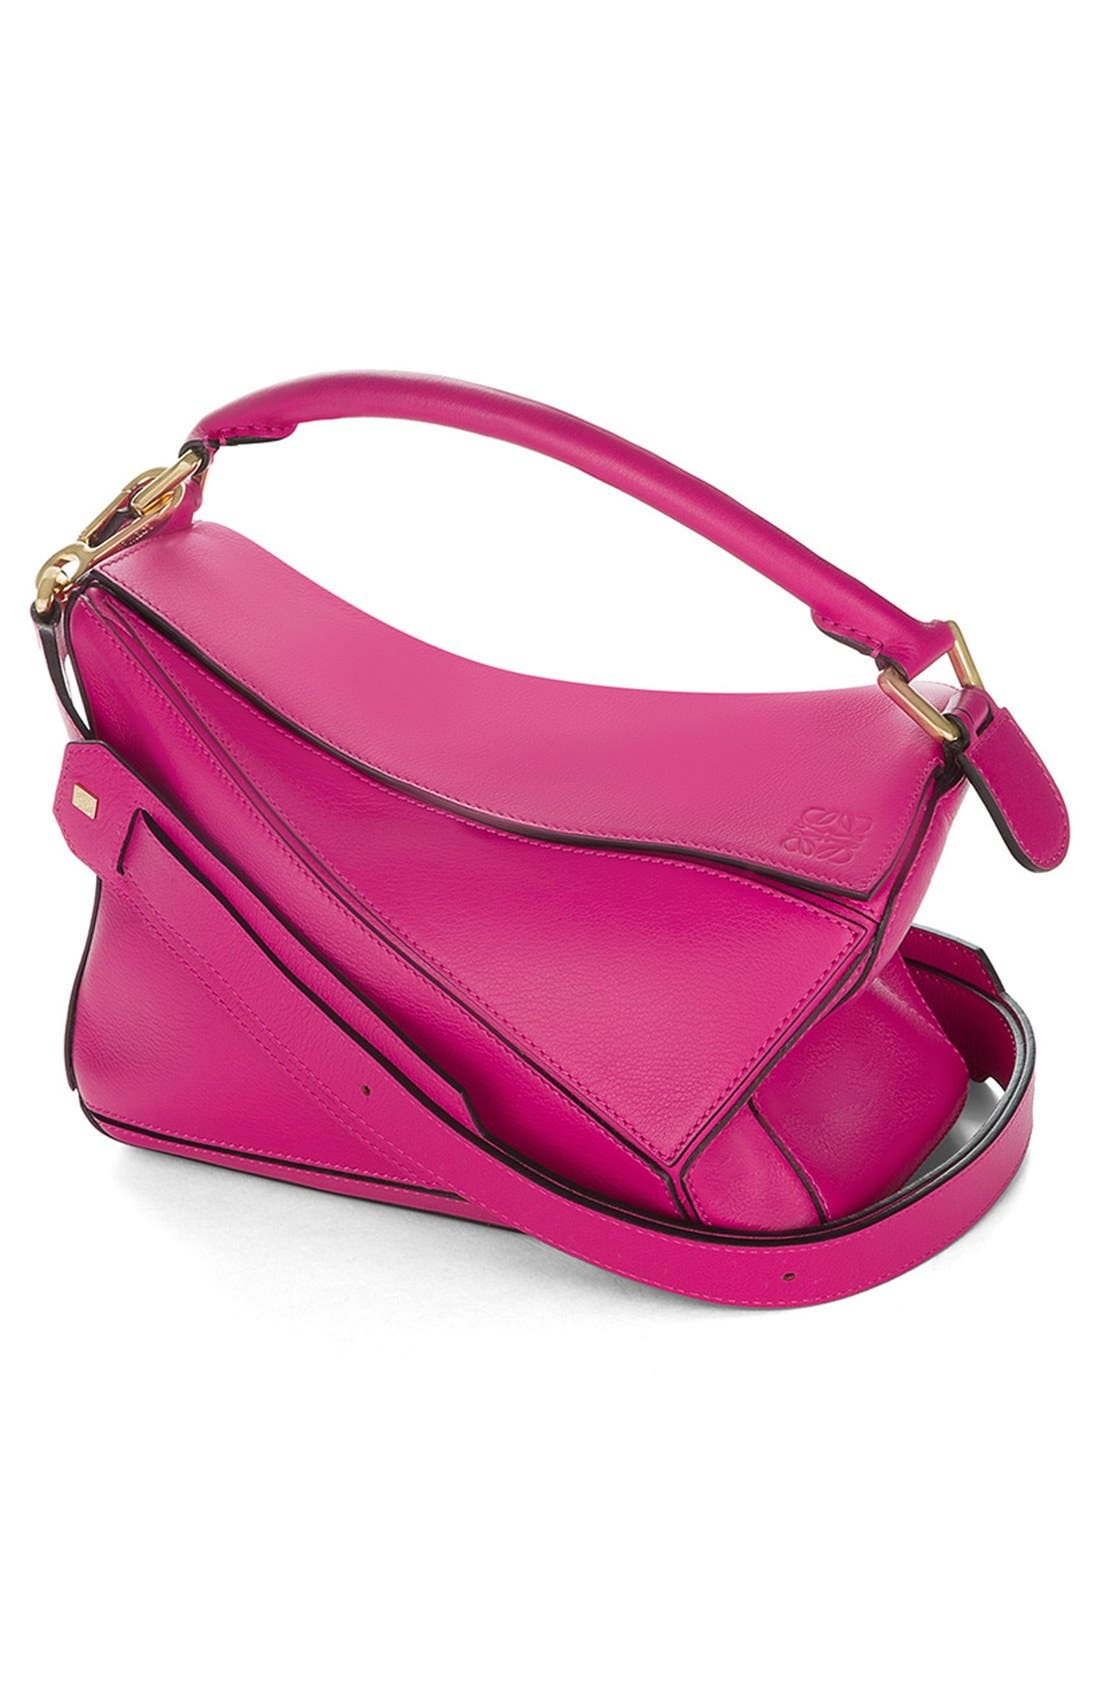 'Small Puzzle' Calfskin Leather Bag,                             Alternate thumbnail 40, color,